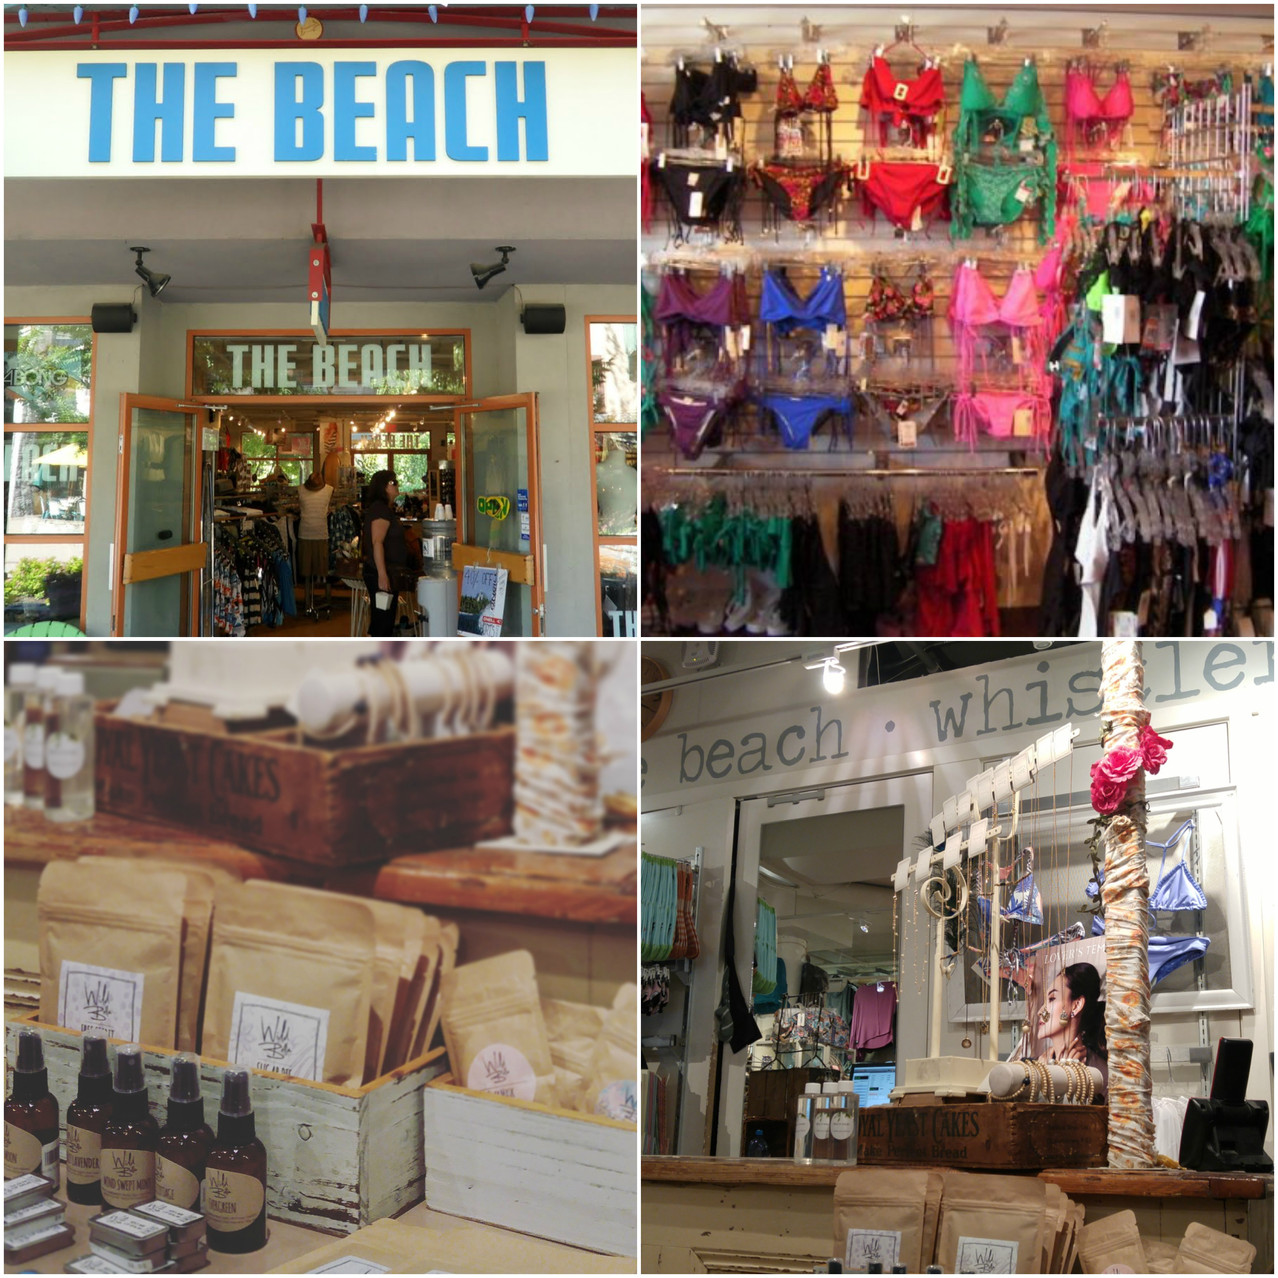 The beach collage